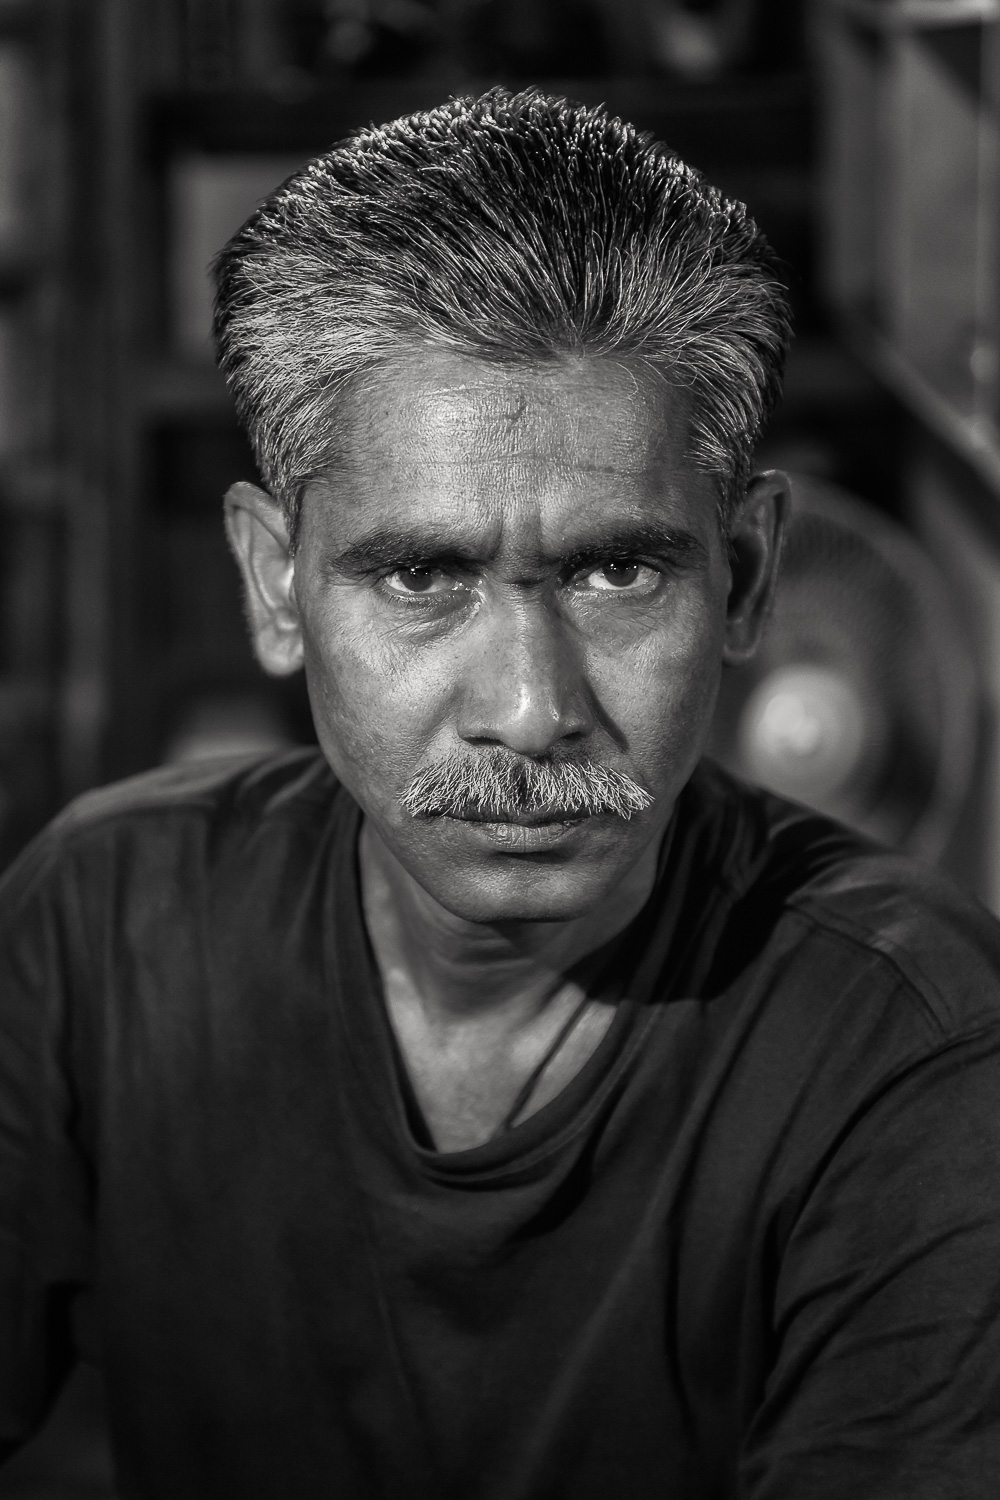 And    What is Wisdom   , Father? A father figure in    Kolkata, India   .